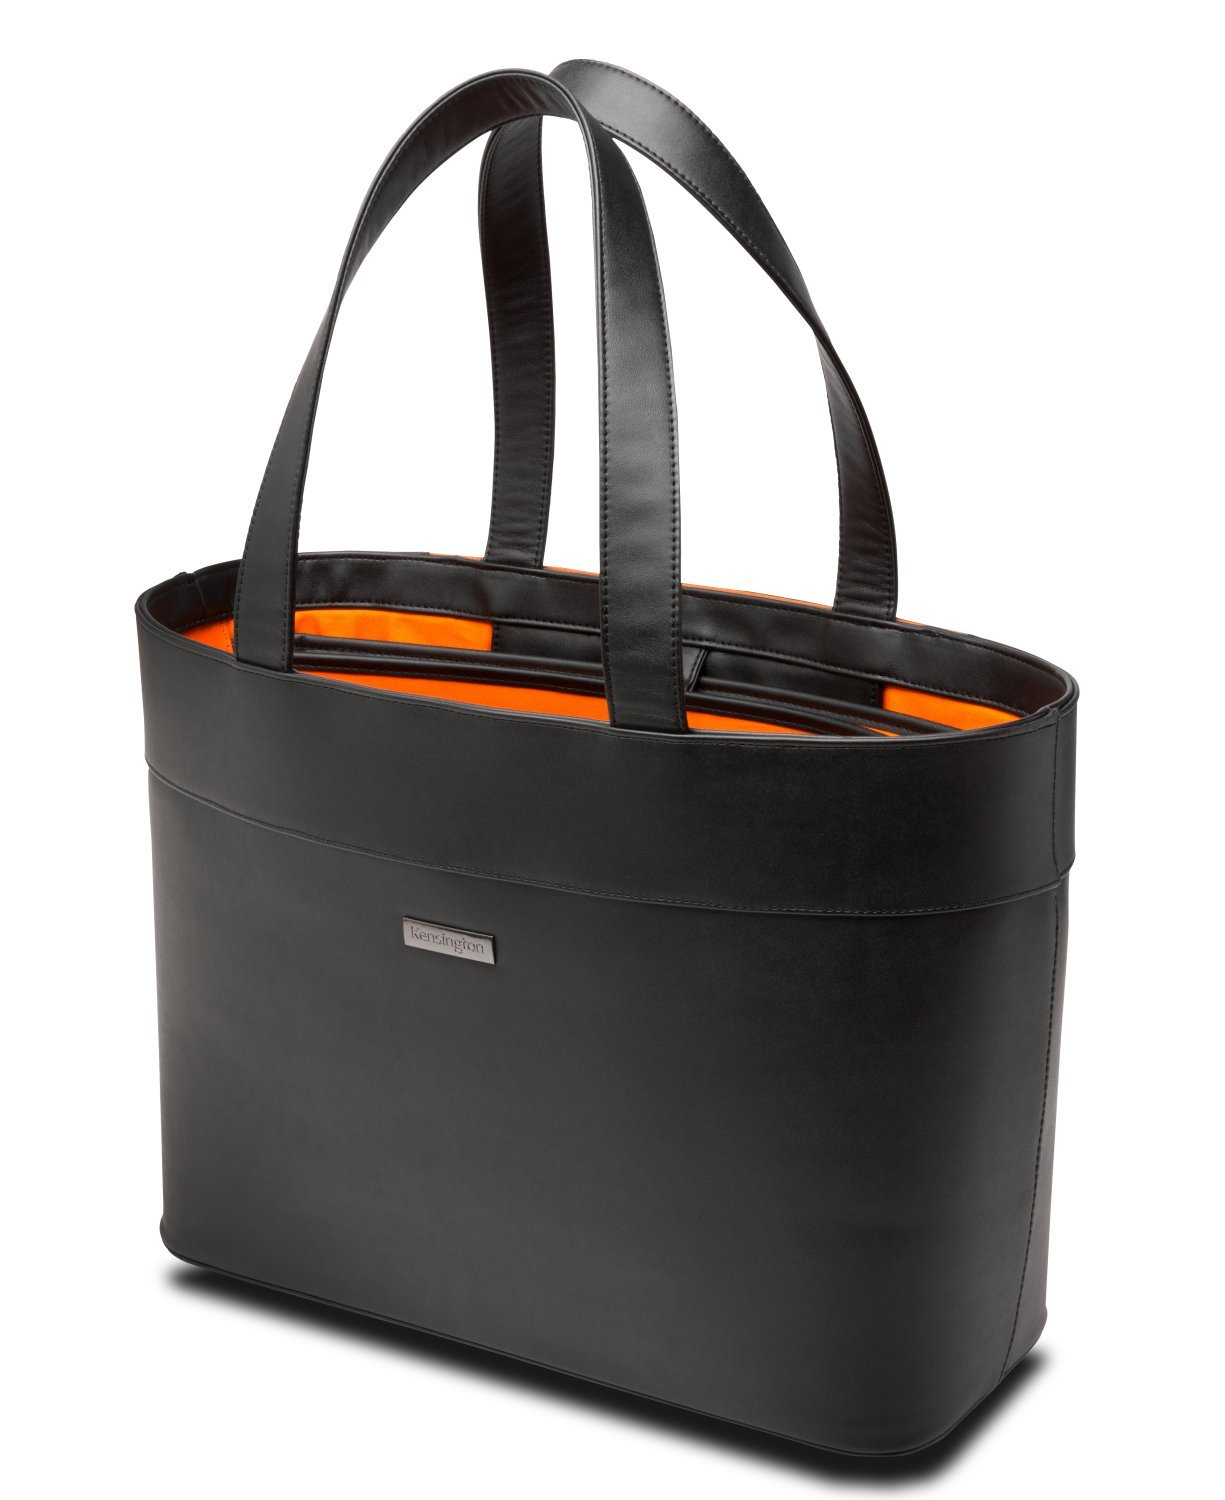 Kensington LM650 15-Inch Laptop Tote, Black (K62614WW)